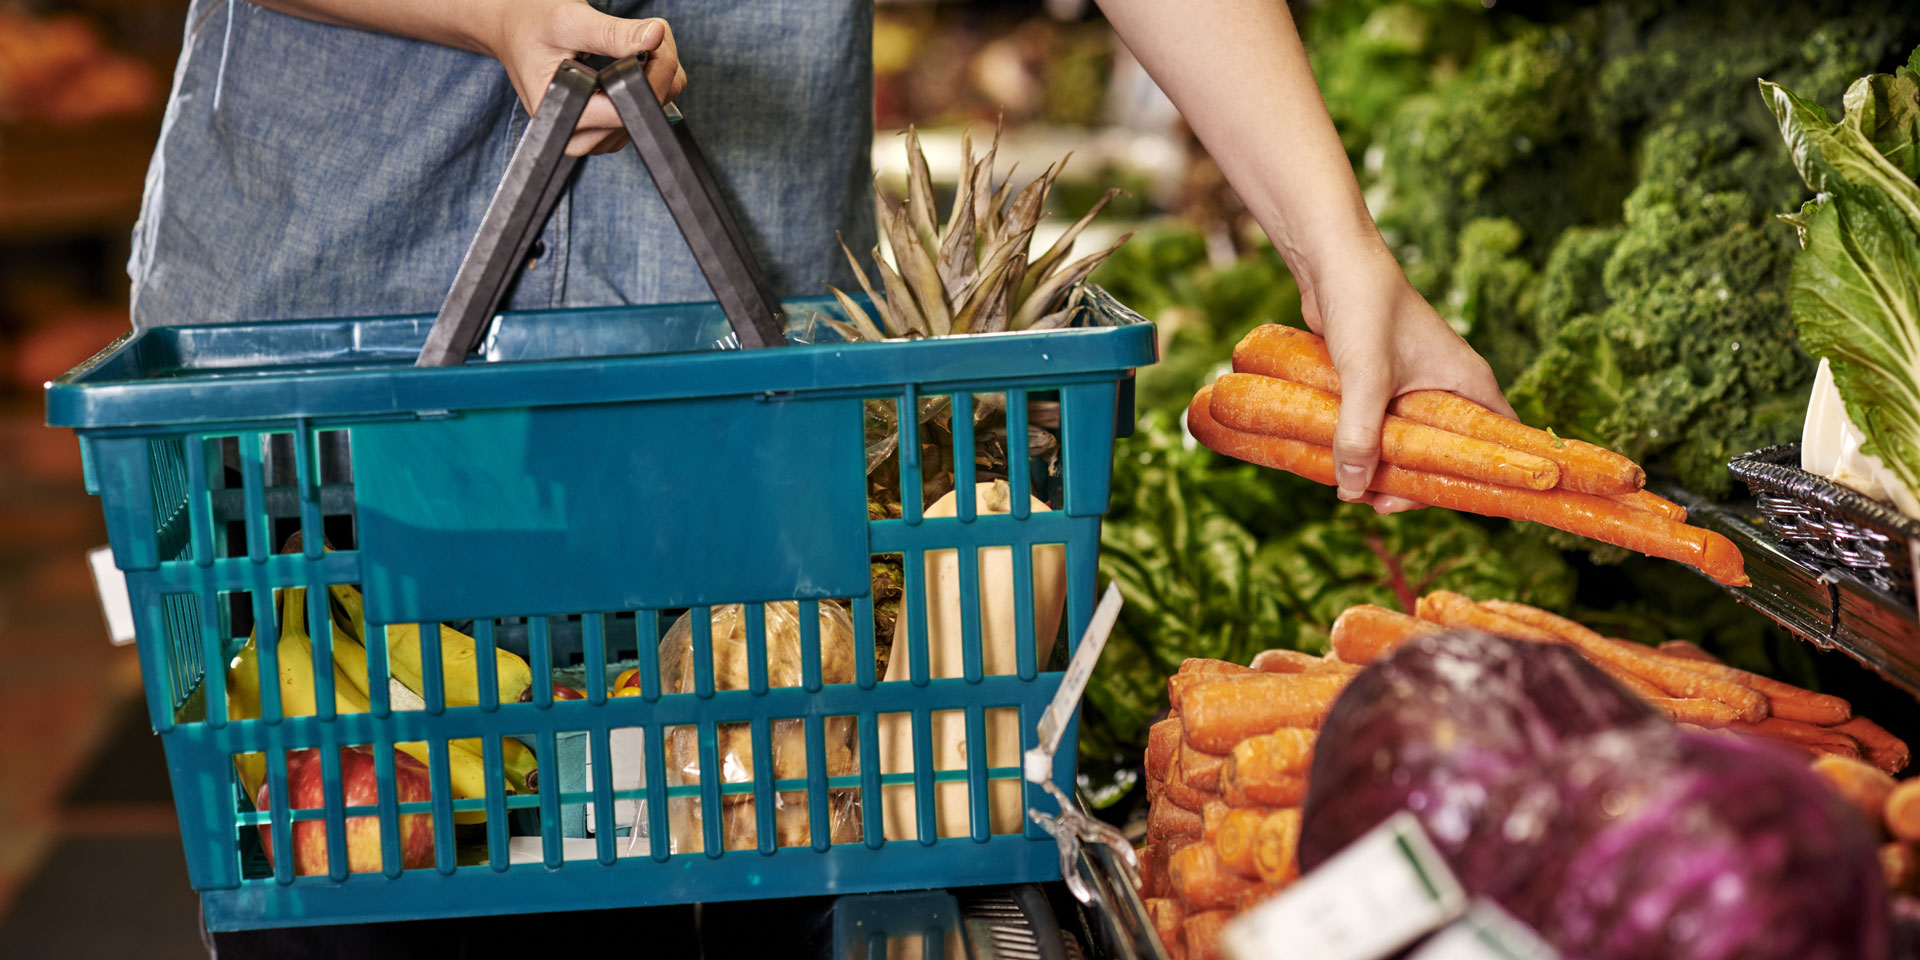 6 trends shaping the future of supermarkets and grocery stores